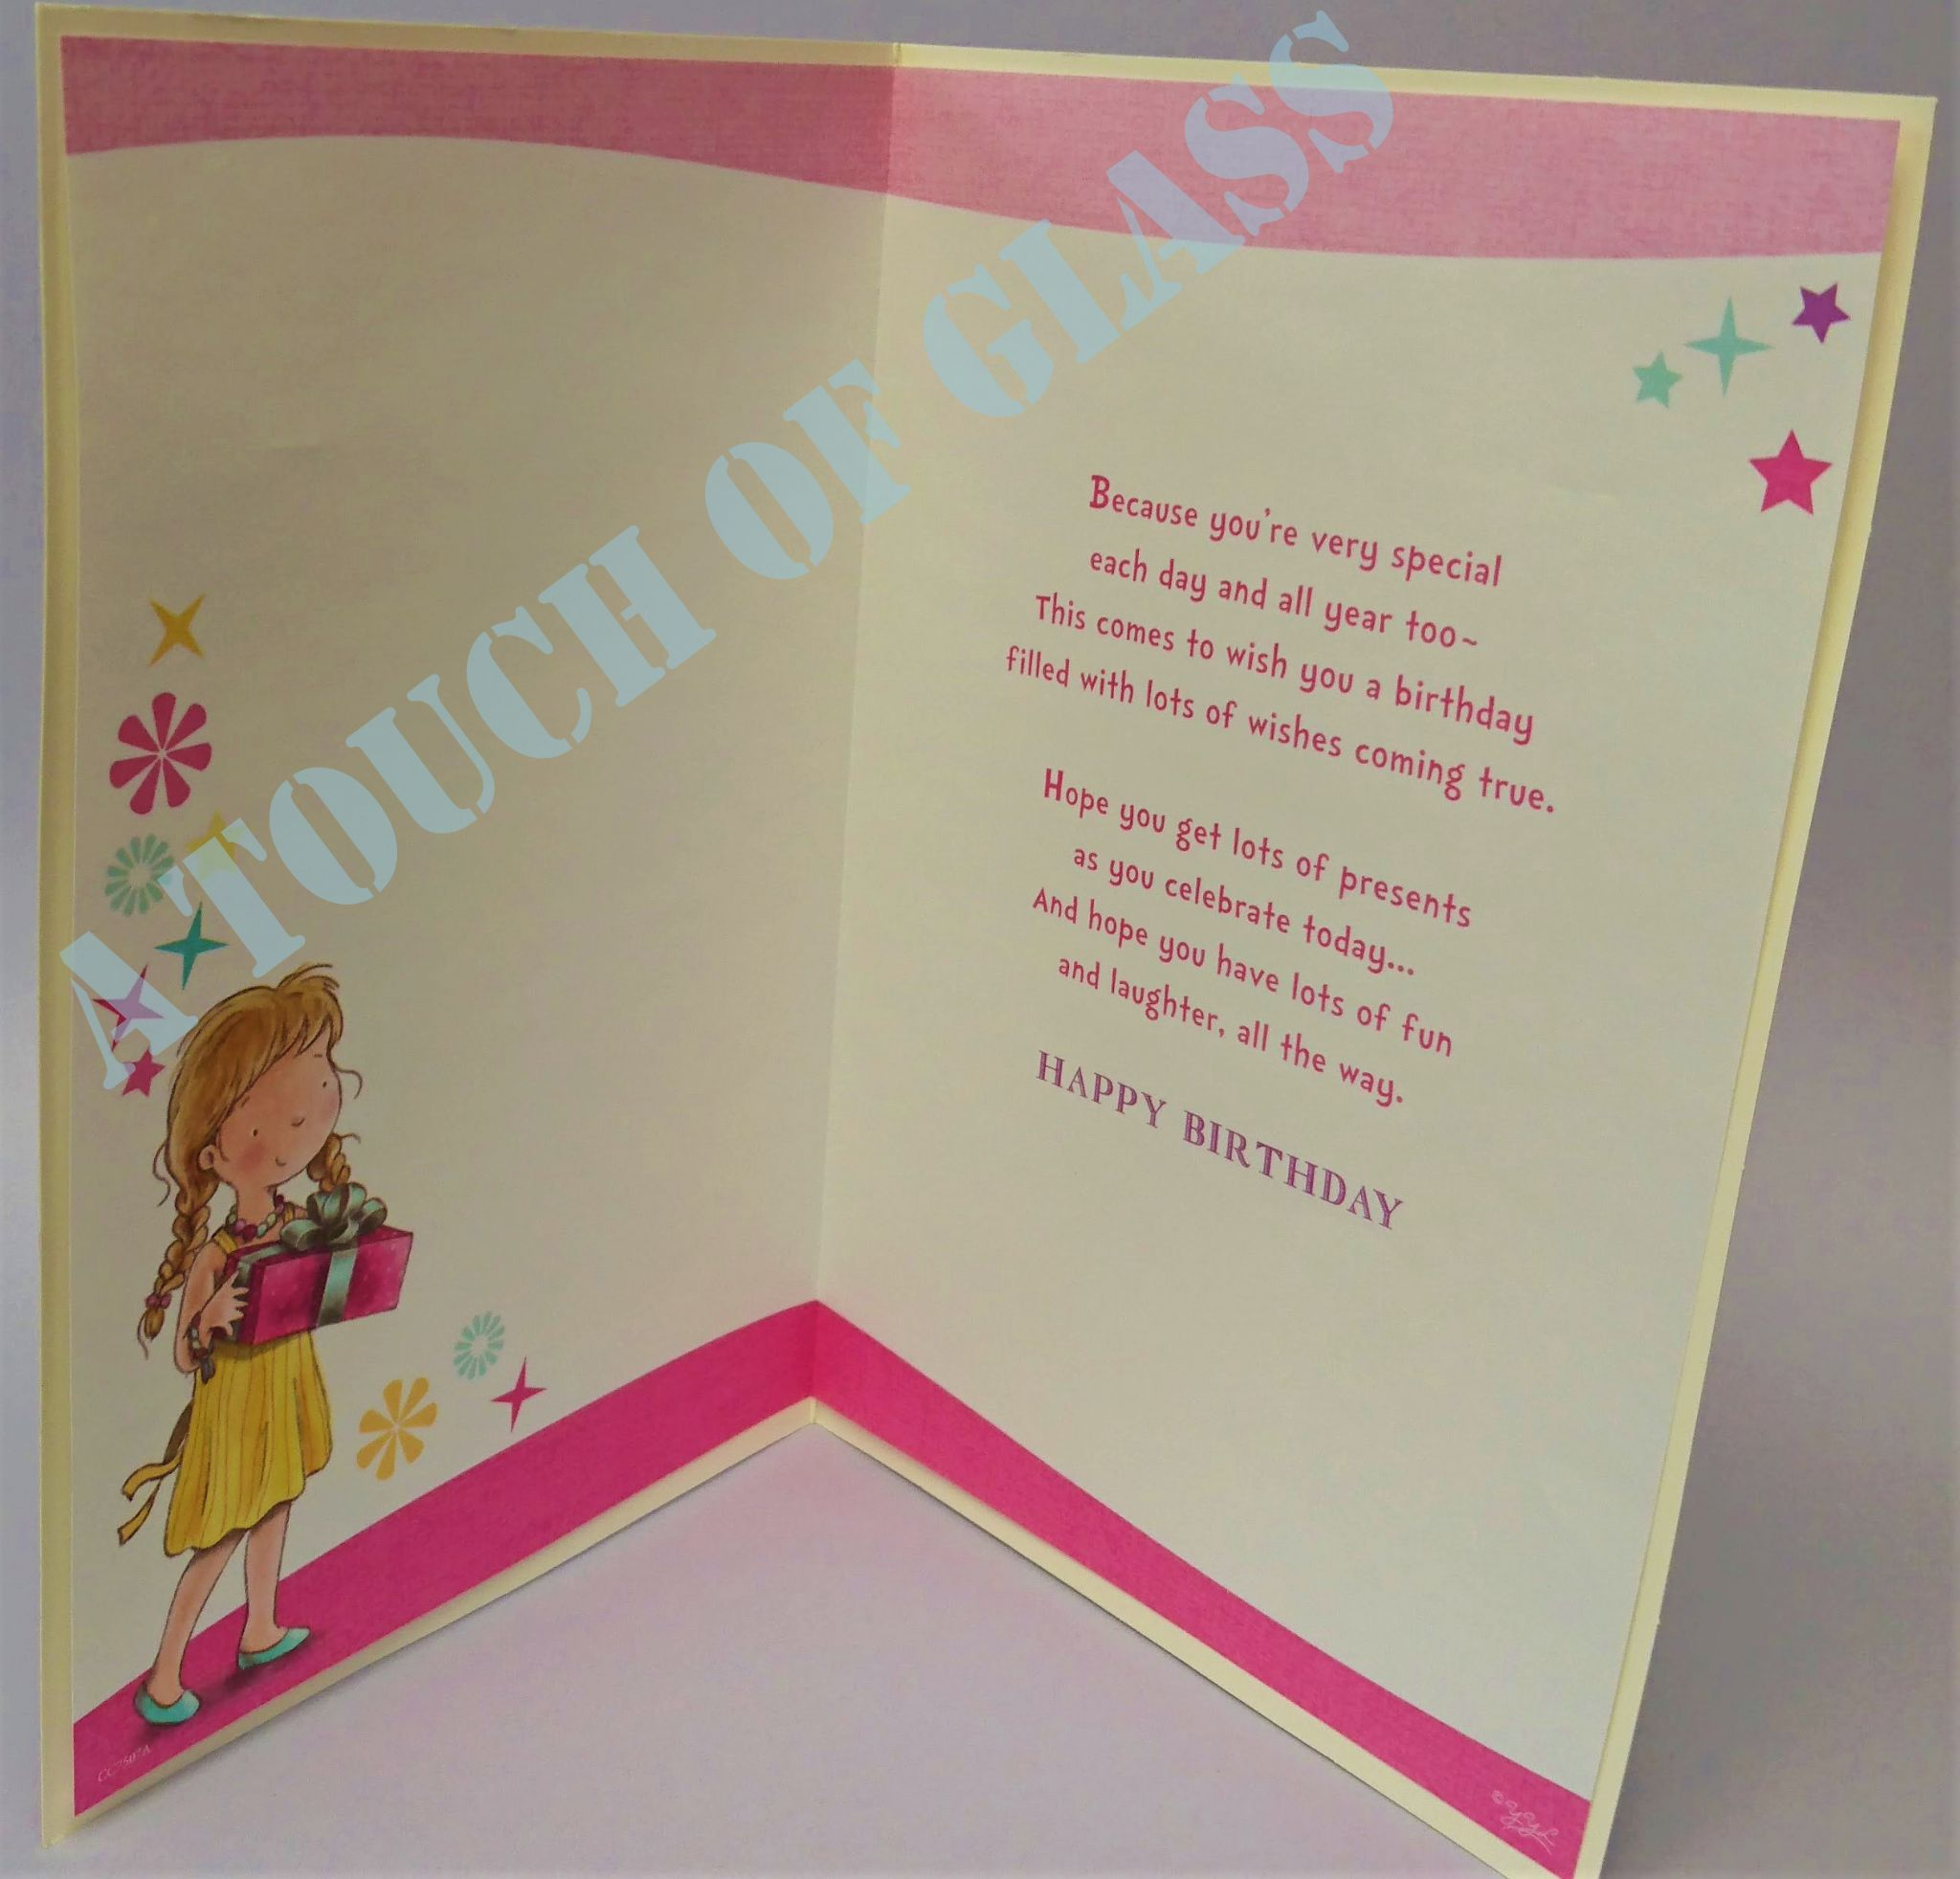 birthday card for 6 year old granddaughter ; badge-birthday-card-6-year-old-granddaughter-%5b2%5d-4267-1-p